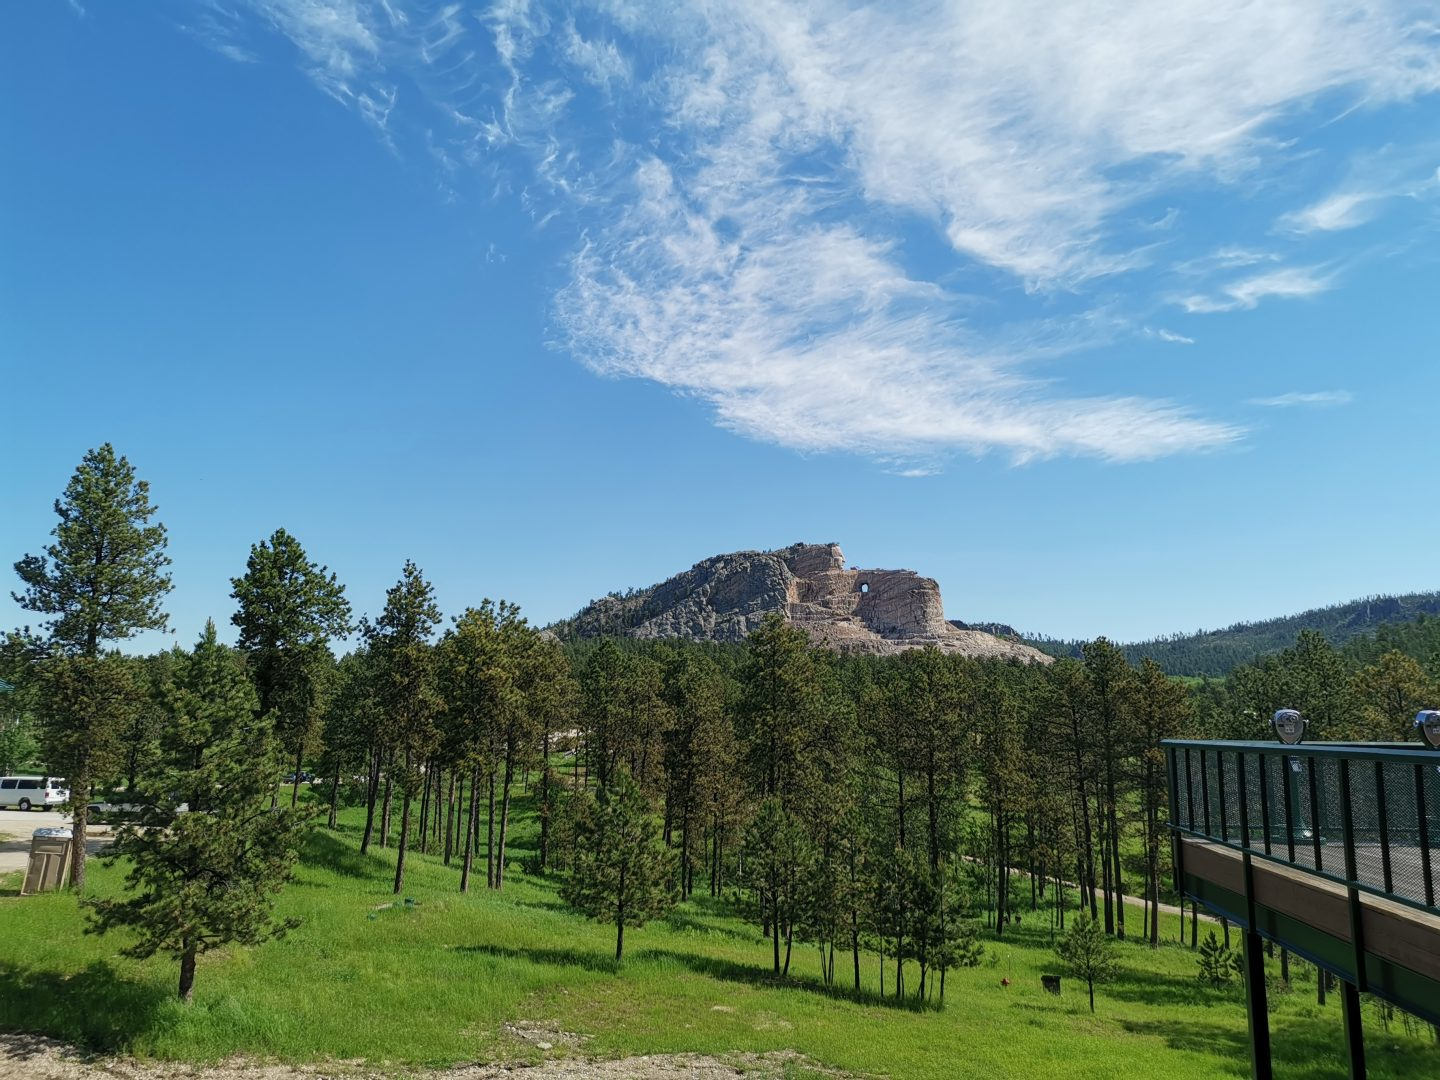 DAY 36&37: TREK AMERICA | GRAND TREK MOUNT RUSHMORE, BADLANDS & 1880's TOWN